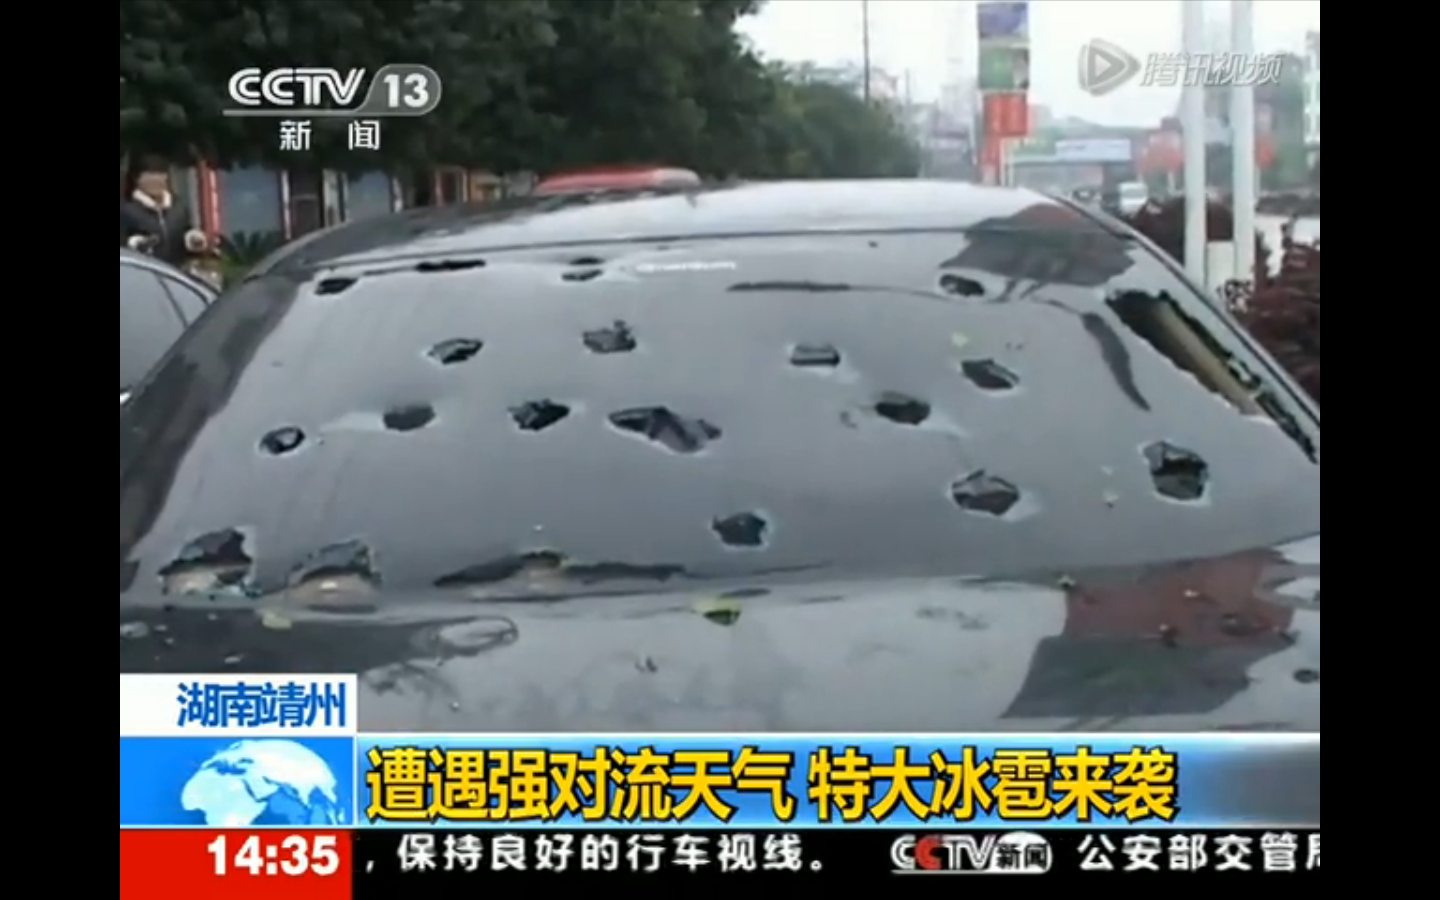 Damaged car in Guangdong Province. (via CCTV)